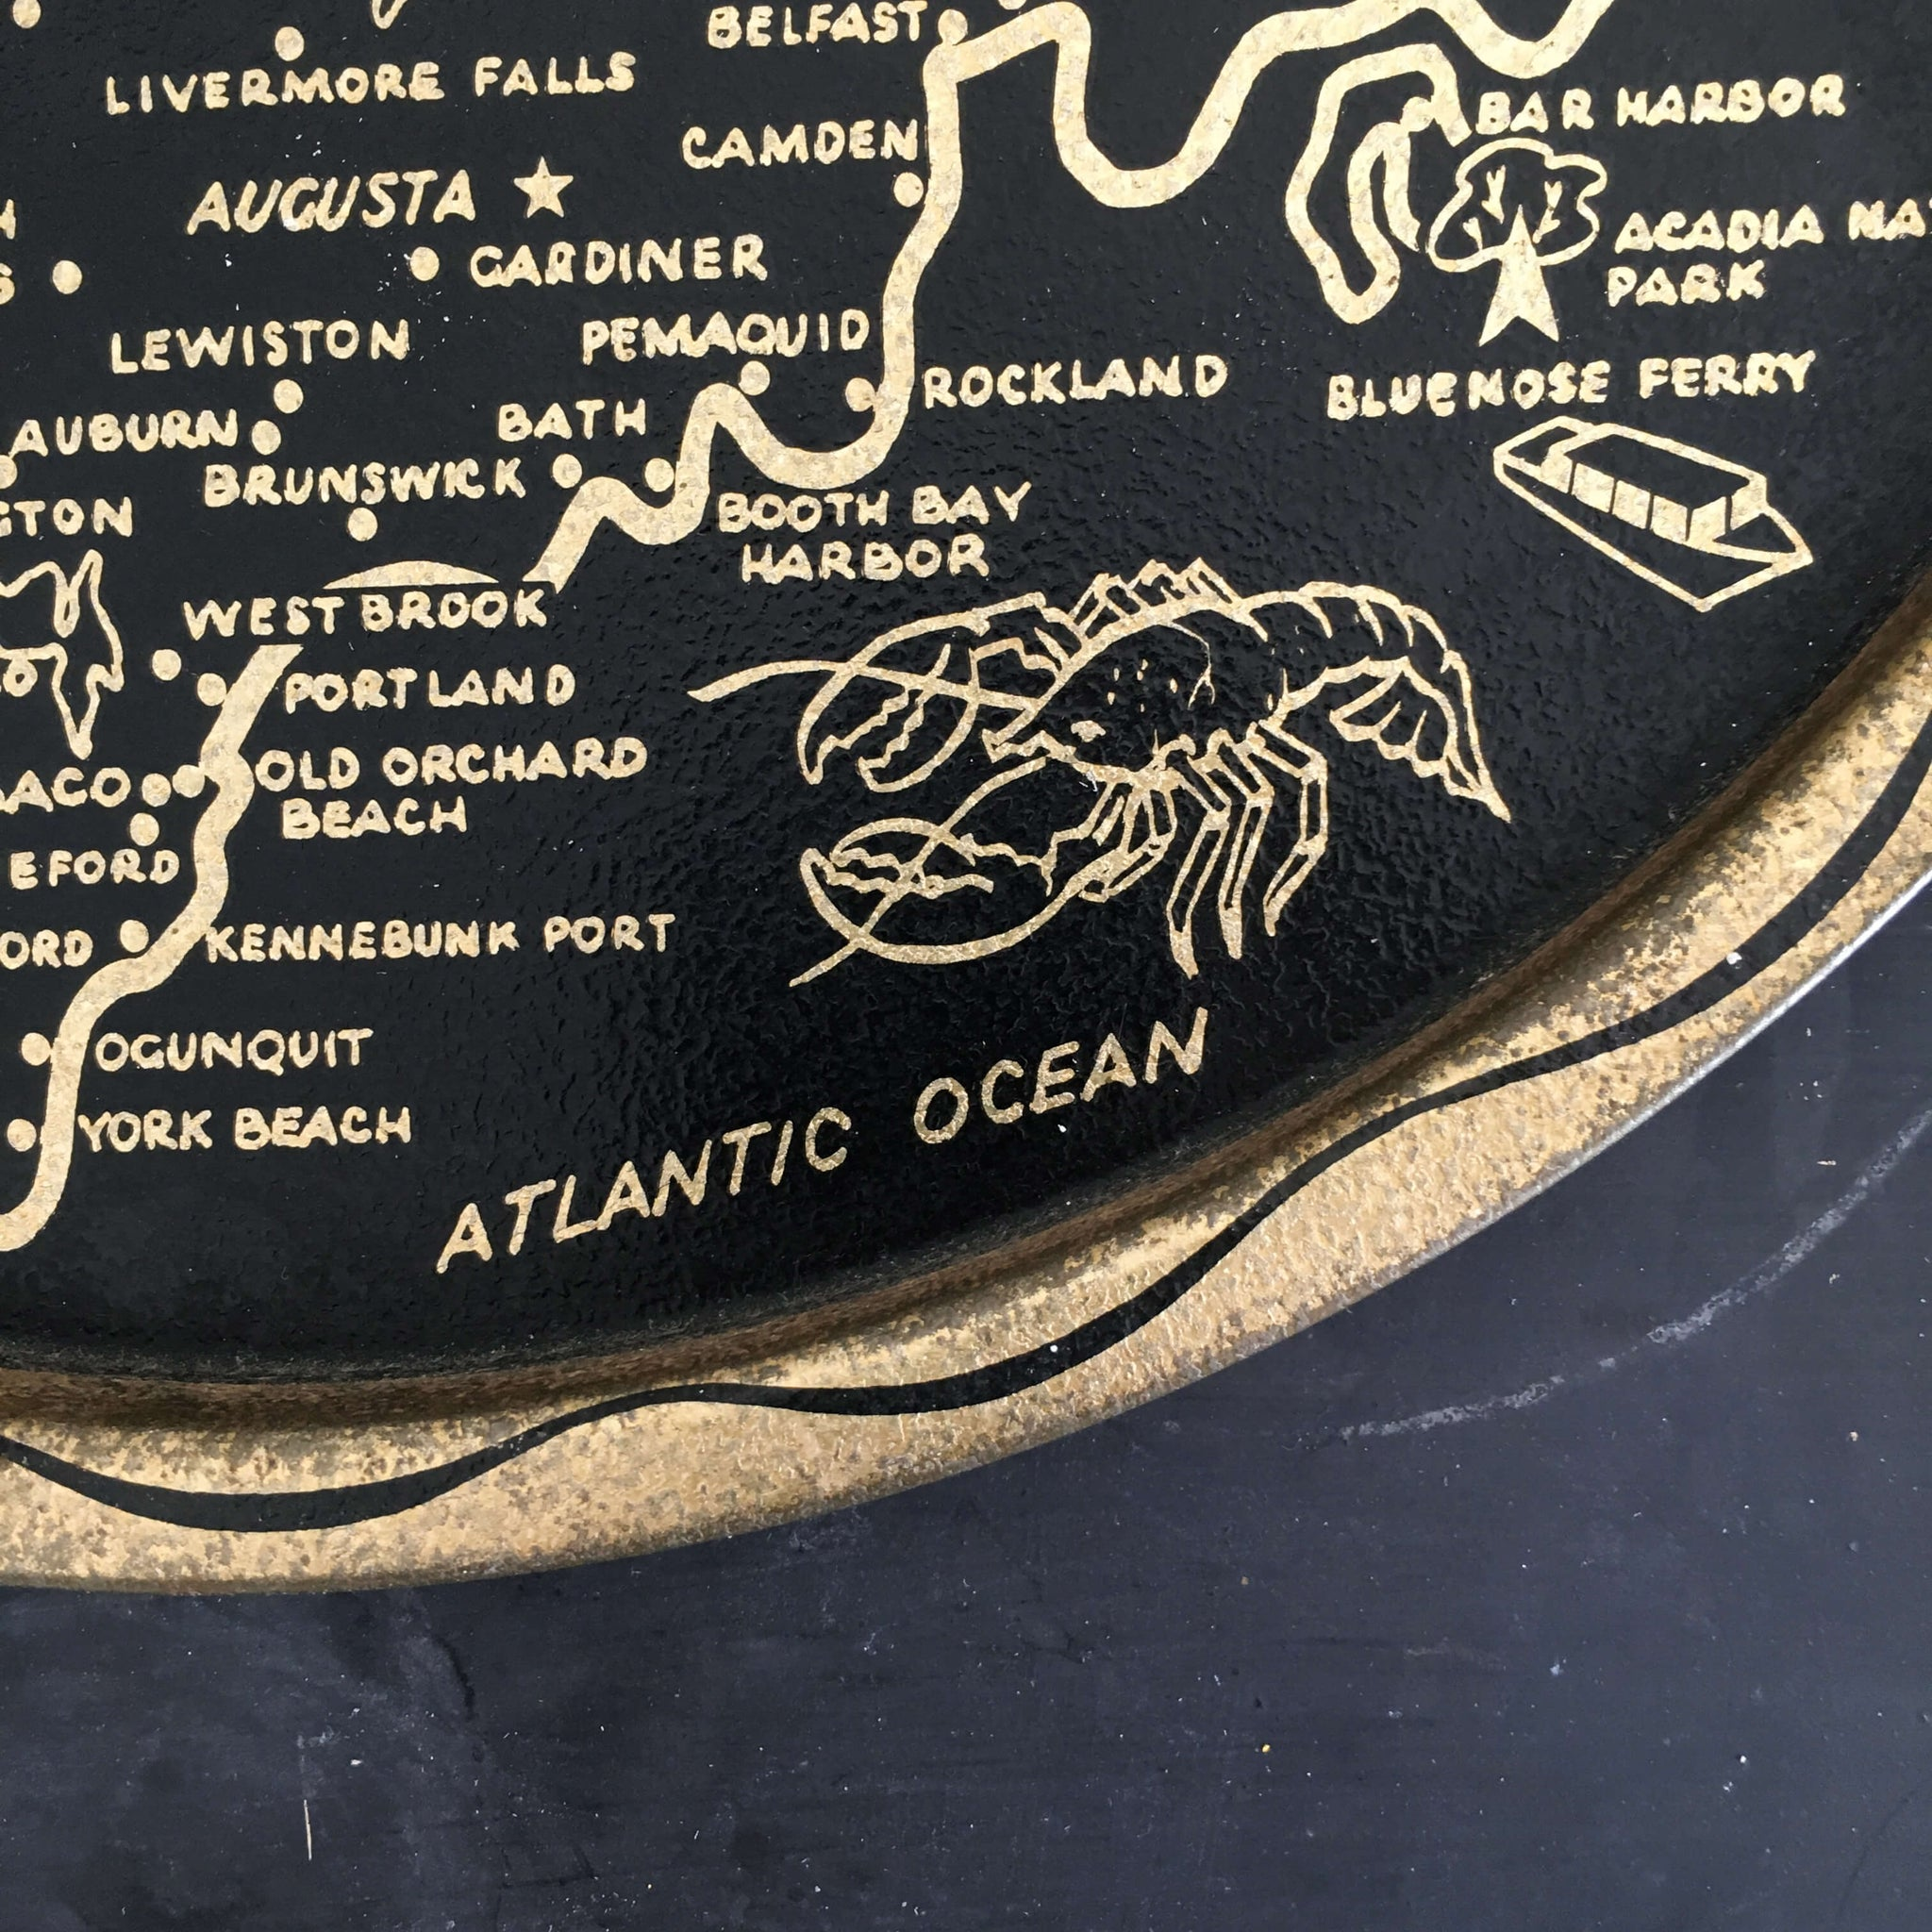 Vintage 1960's  Tin Tray - State of Maine  Travel Souvenir - Black and Gold Travel Collectibles